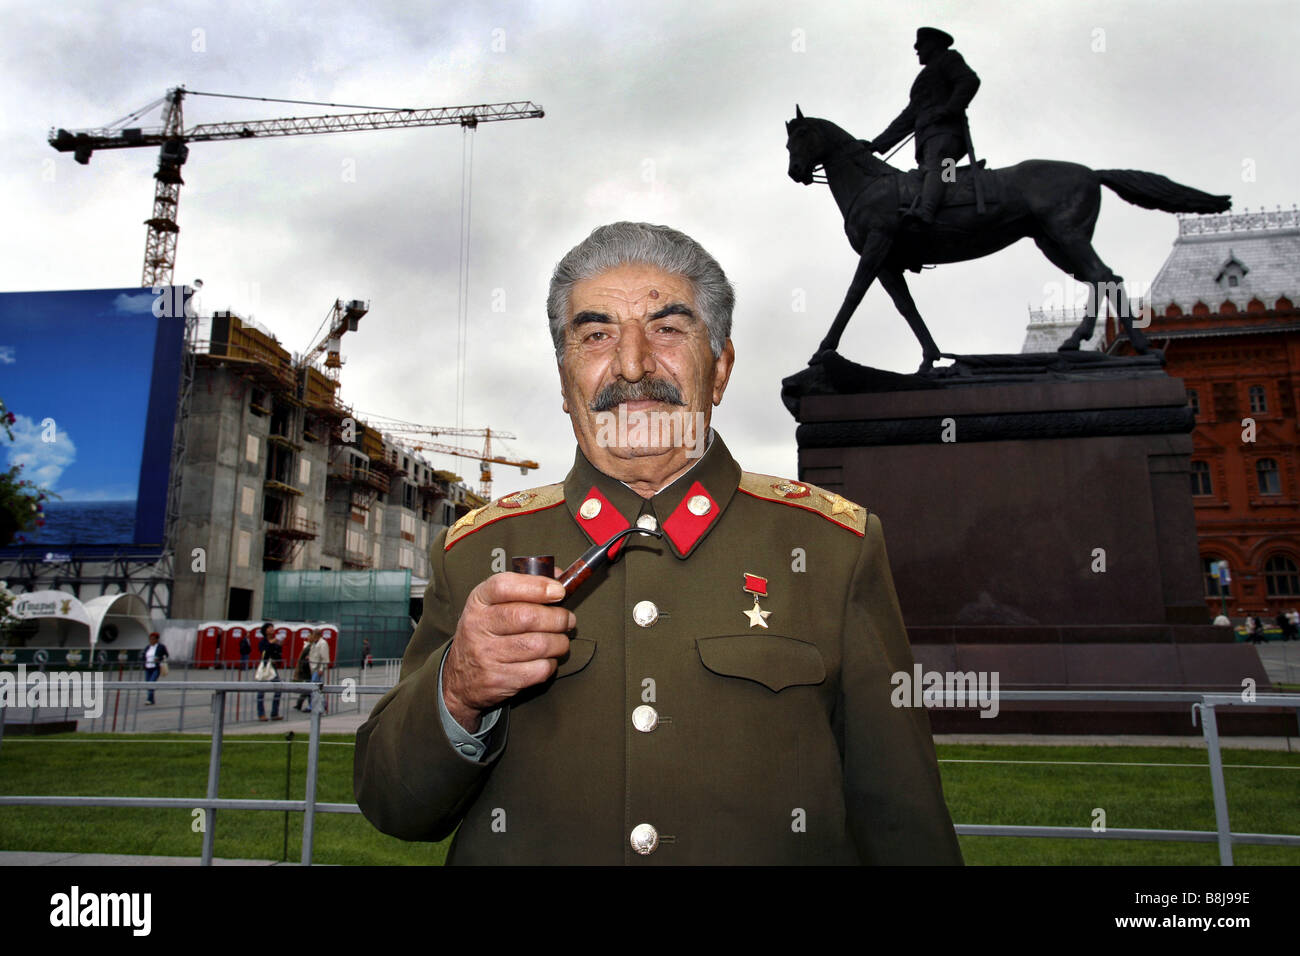 Joseph Stalin impersonator, Manege Square, Moscow, Russia - Stock Image